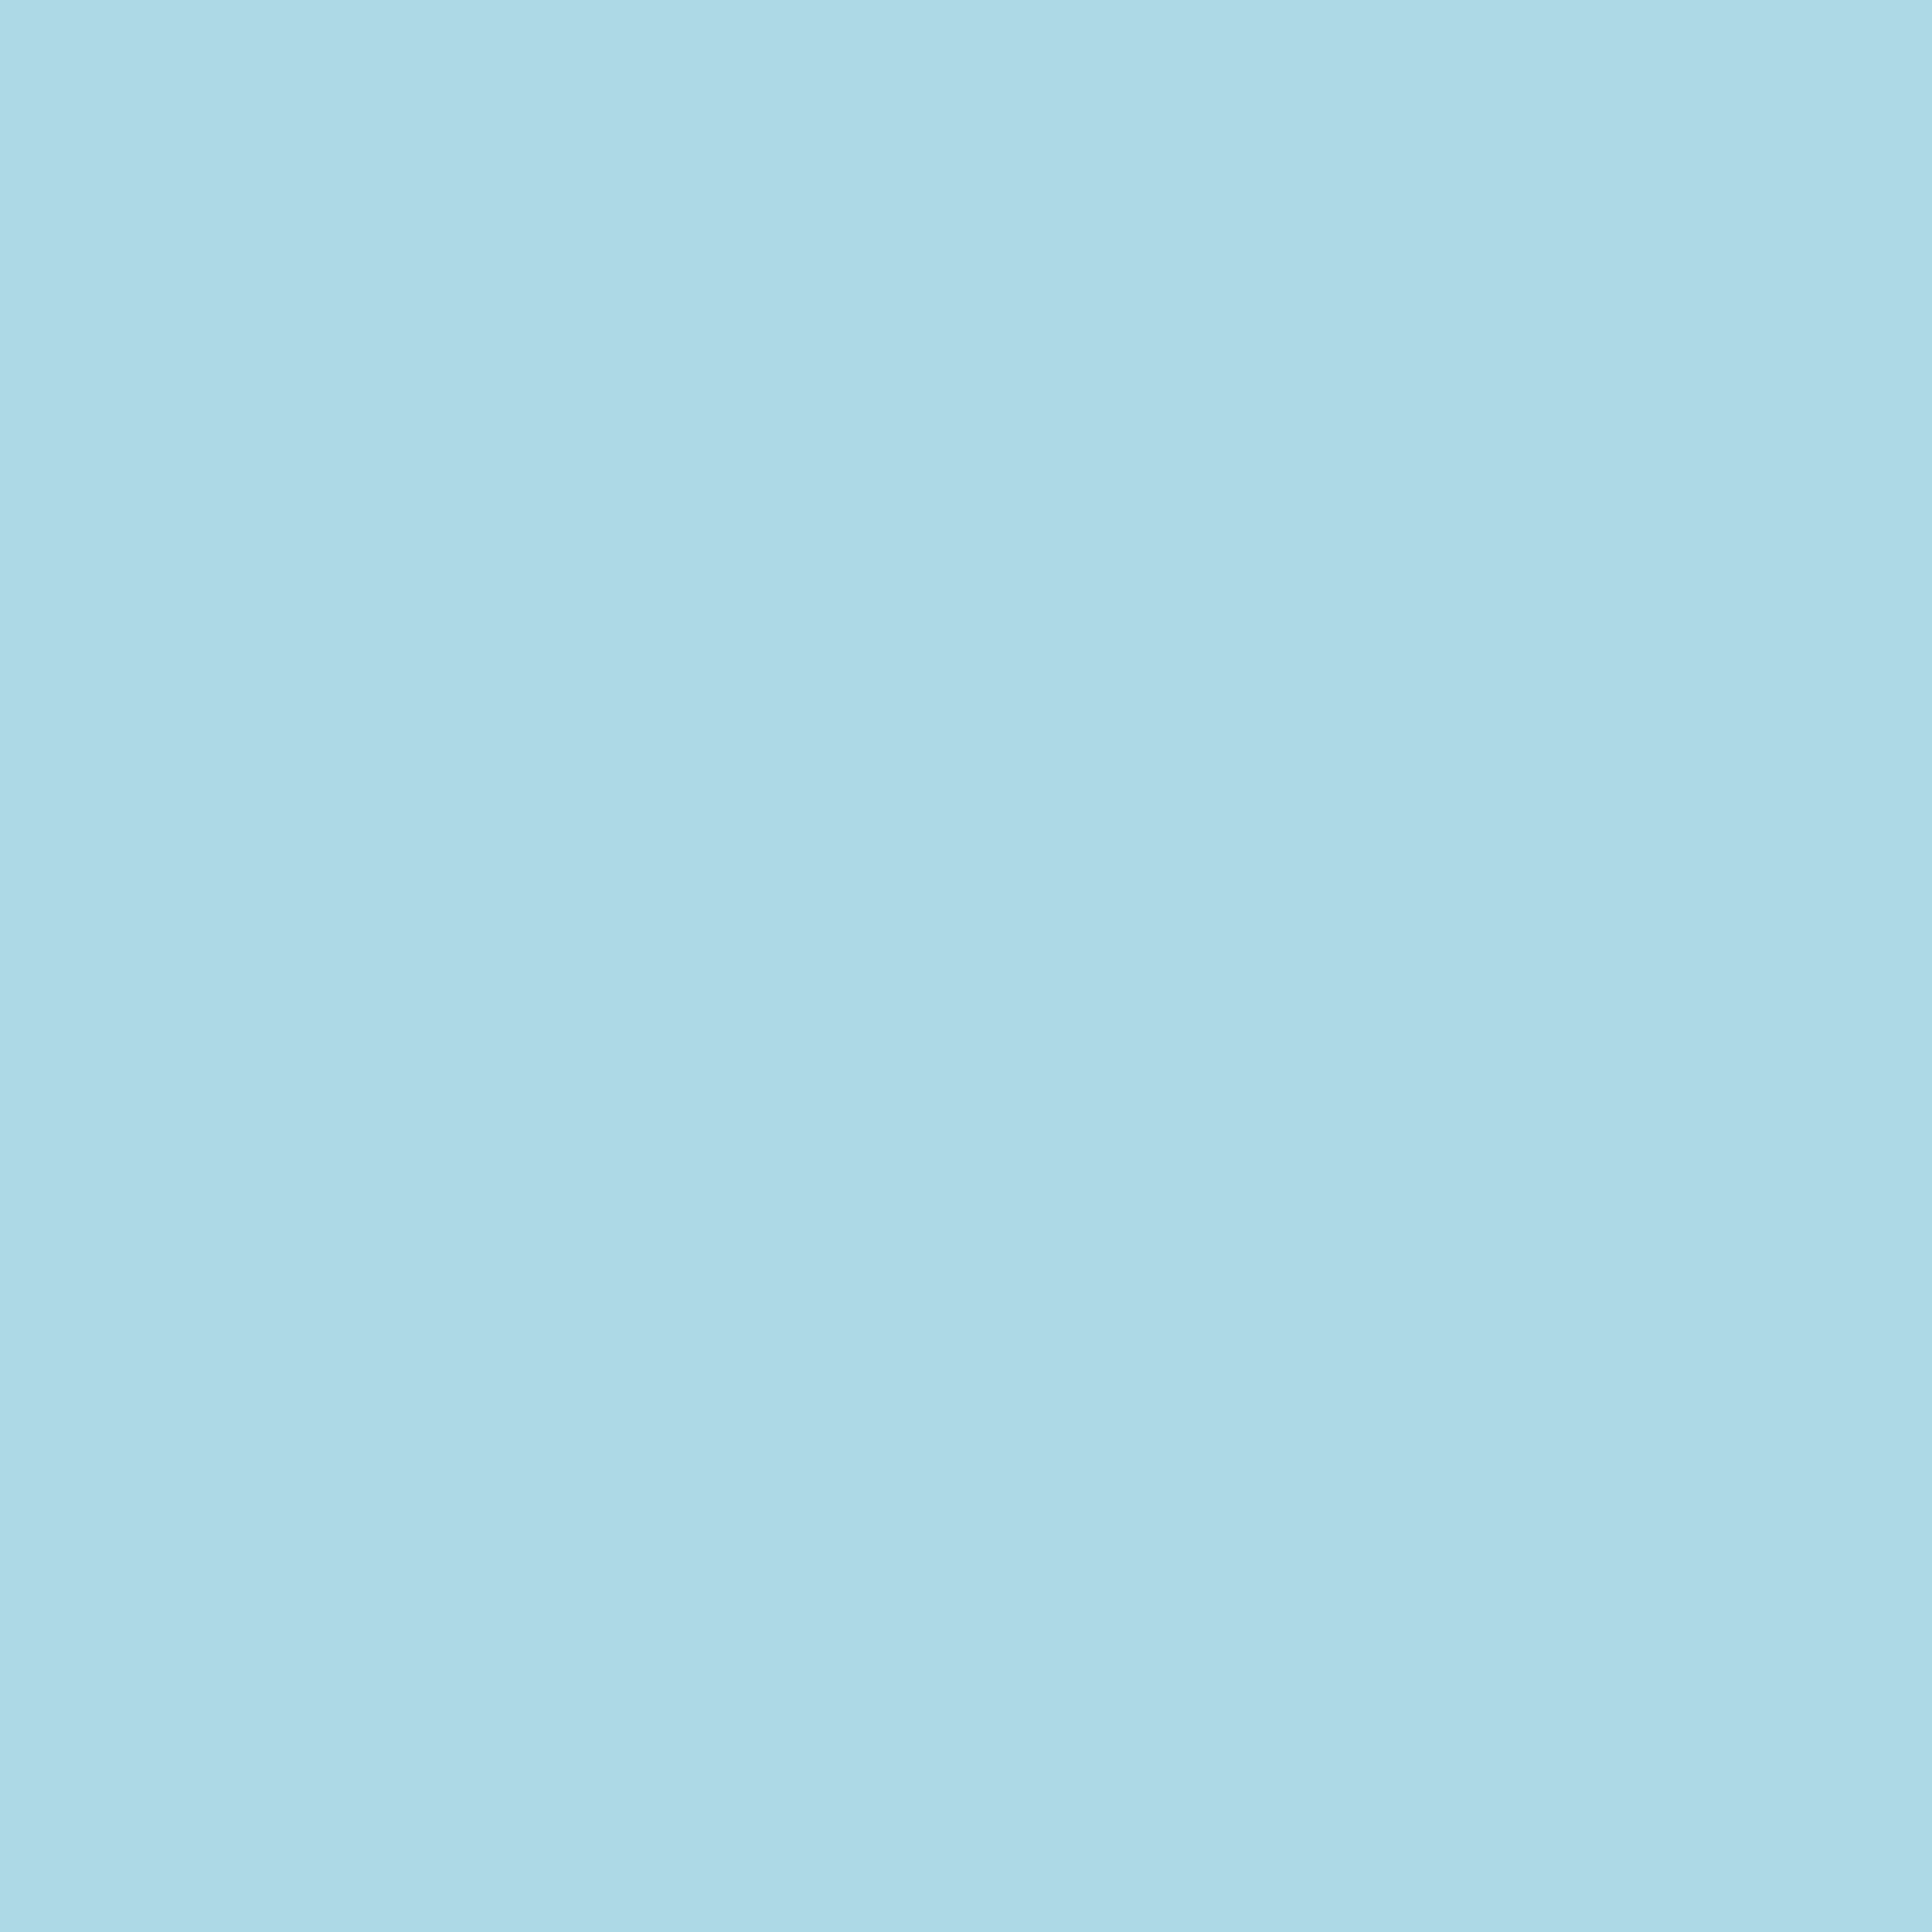 2732x2732 Light Blue Solid Color Background